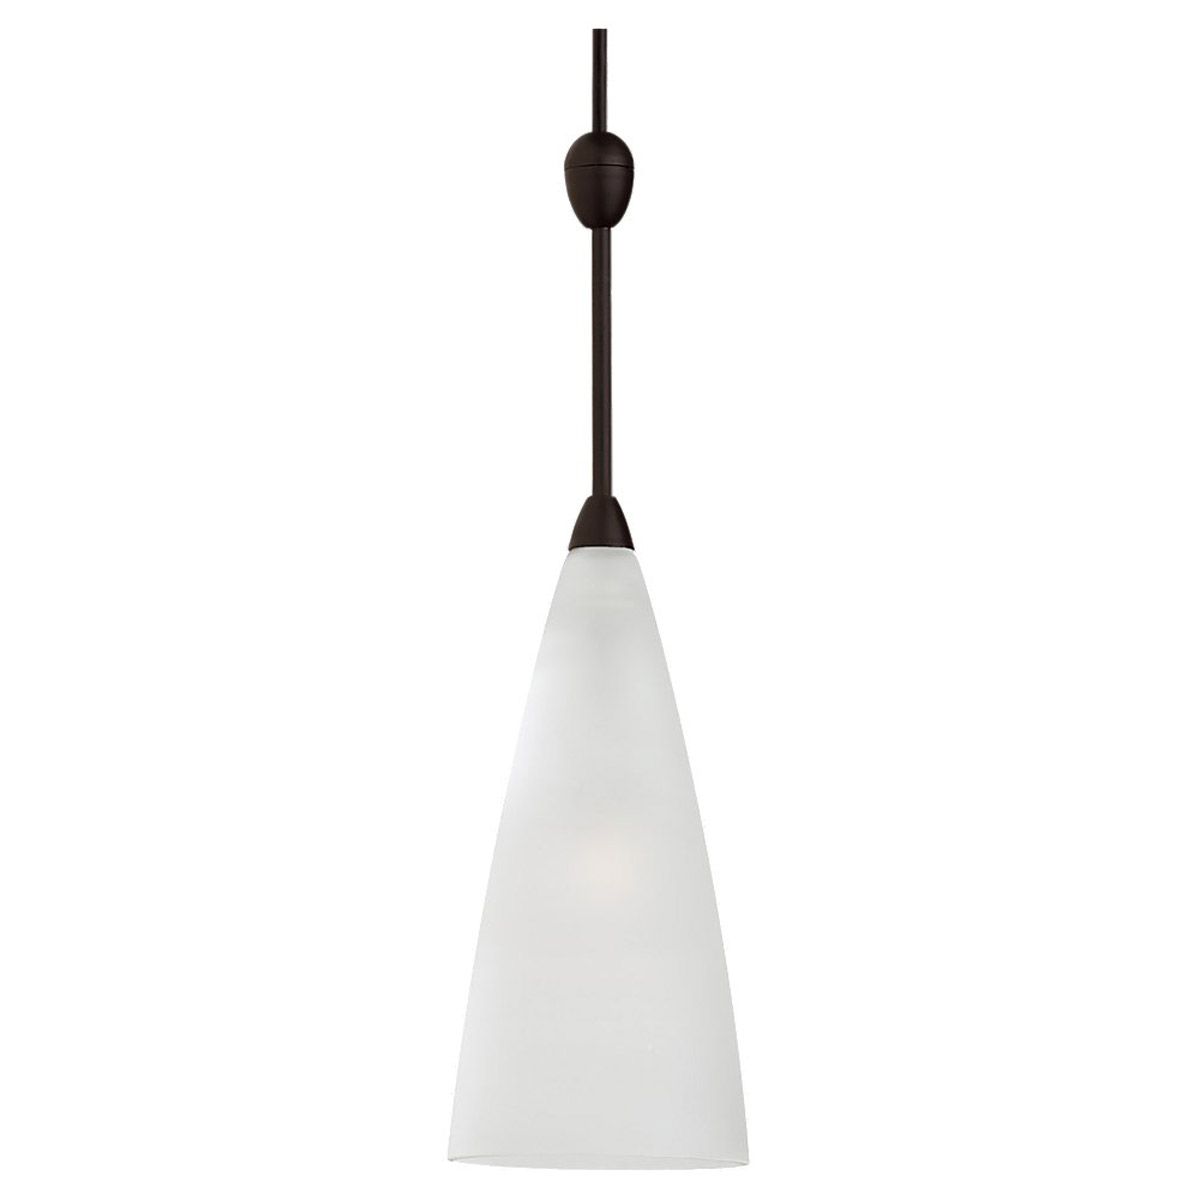 Sea Gull Lighting Ambiance Transitions 1 Light Rail / Ceiling Pendant in Antique Bronze / Satin Etched 94564-71